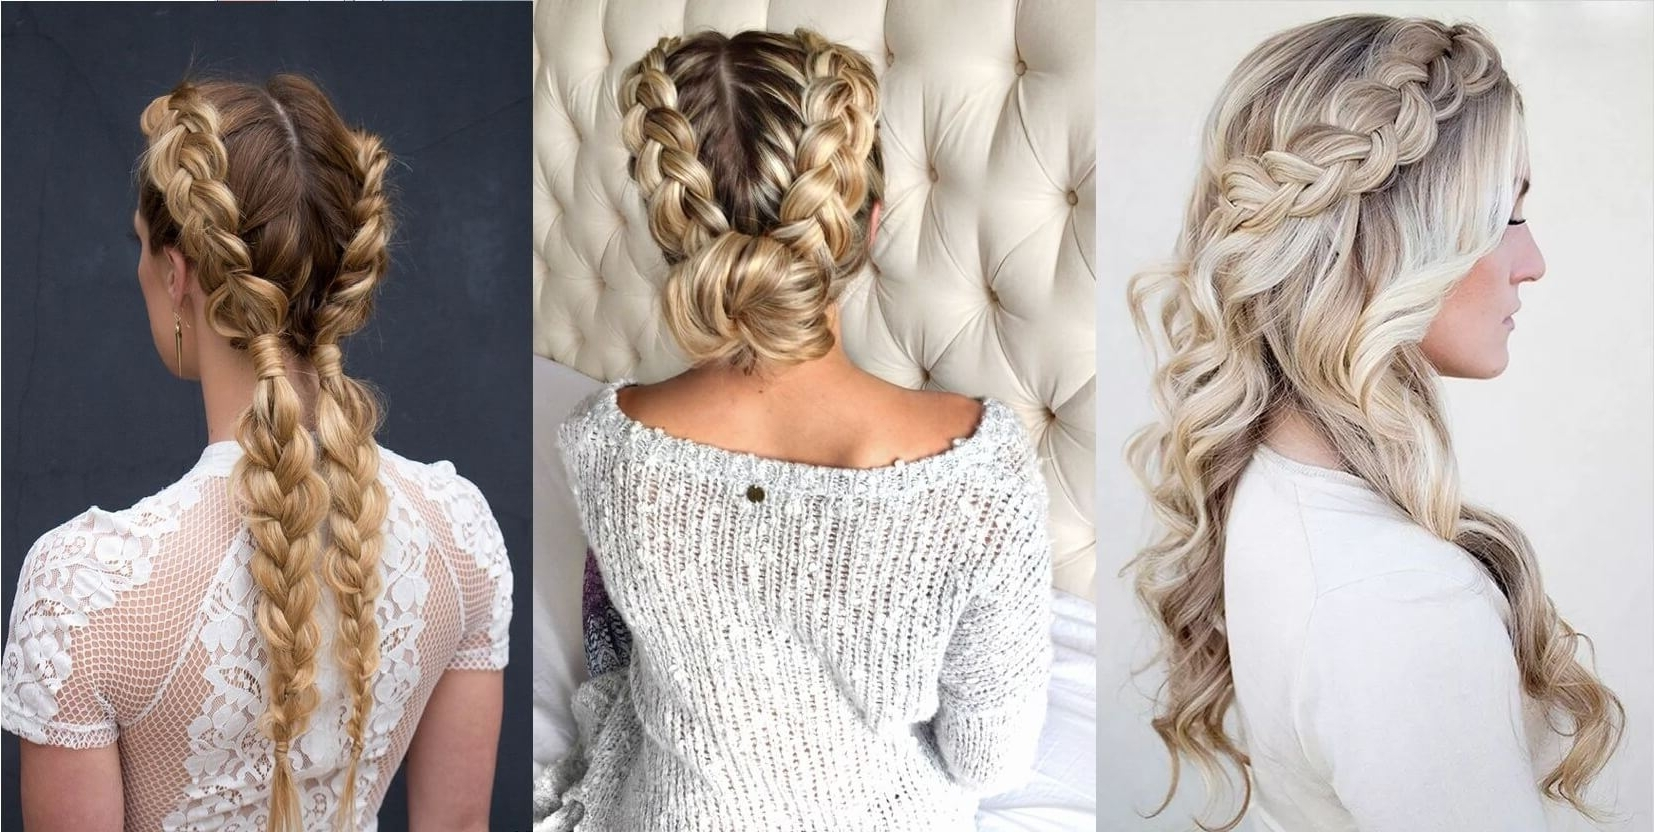 Perfect & Easy Braided Hairstyles – That You Desire For – Media Endeavor Pertaining To Widely Used Braided Hairstyles (View 11 of 15)